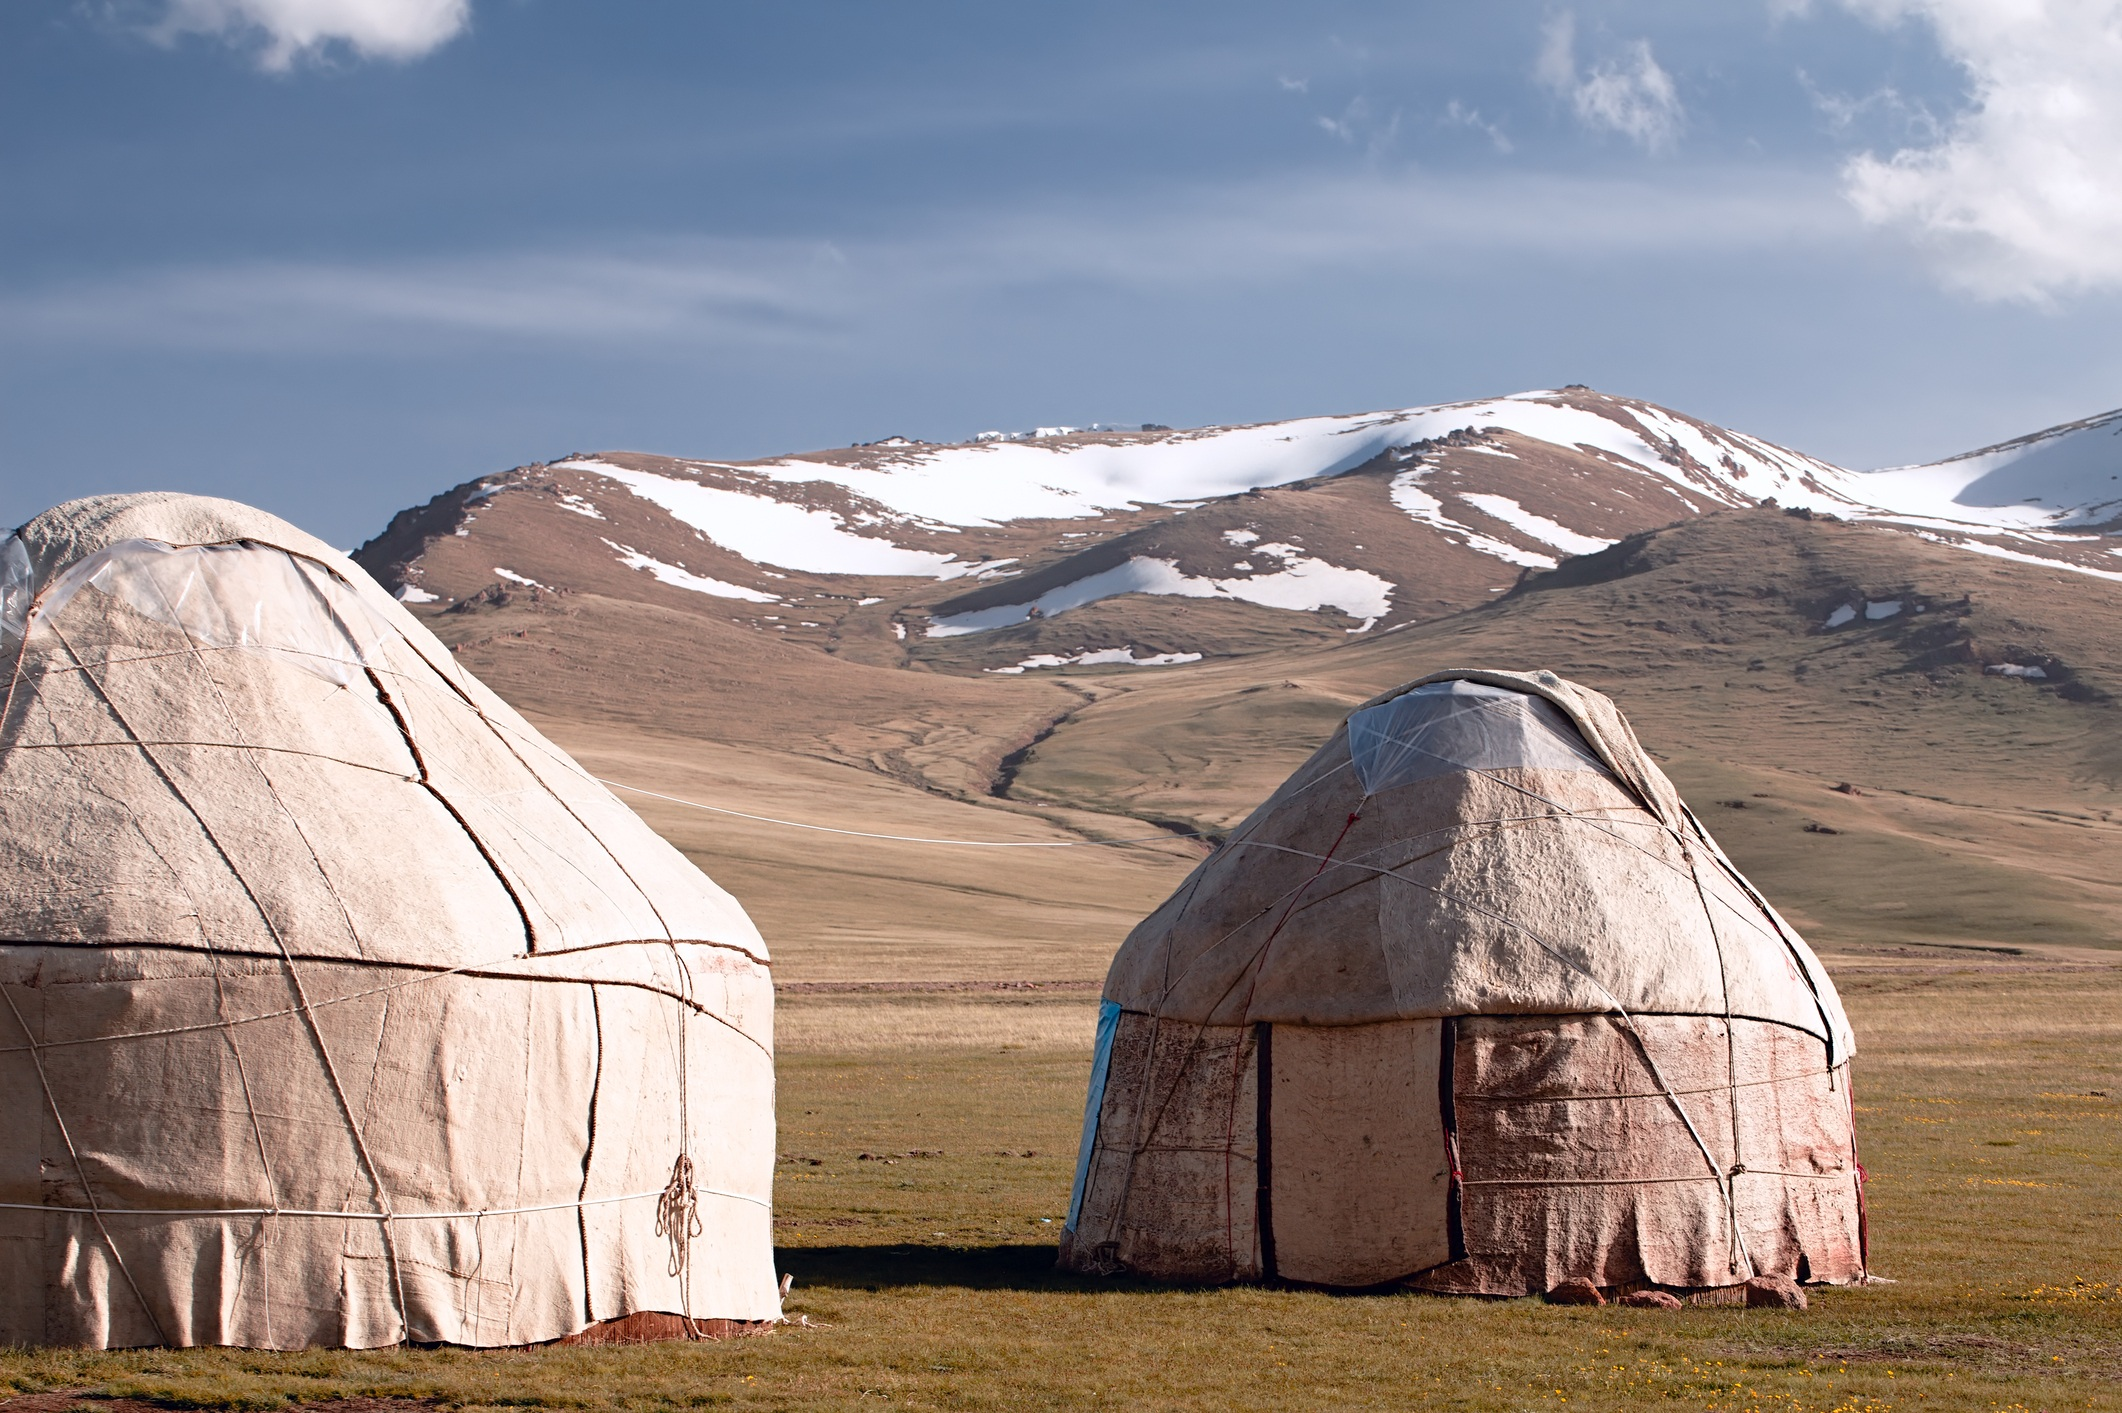 real shepherd yurt in kyrgyzstan Tien Shan mountain